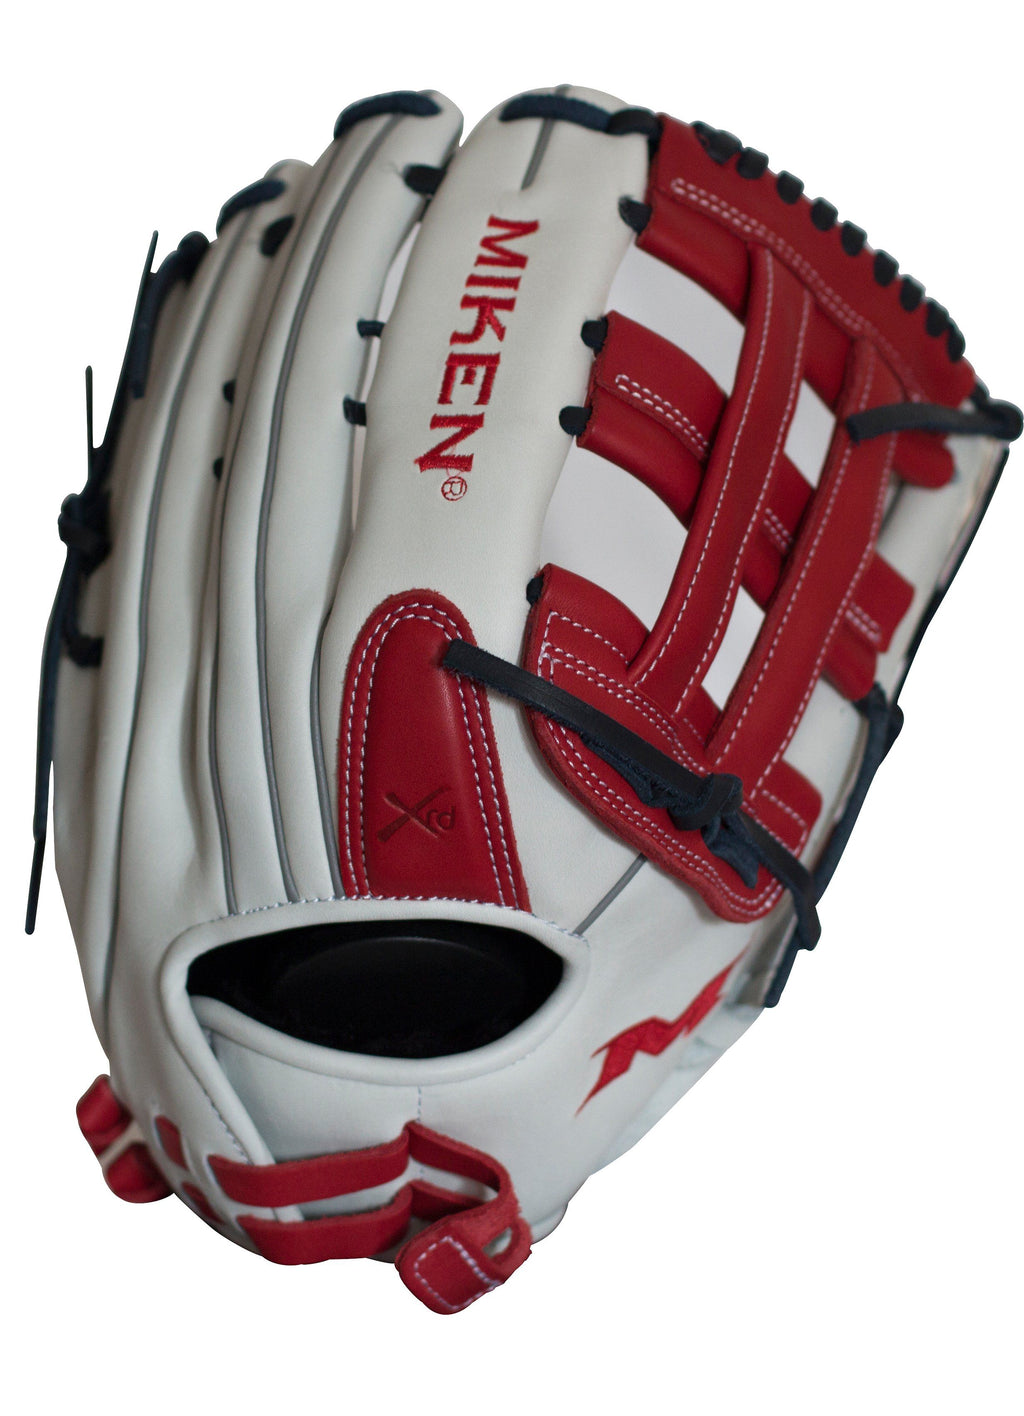 Miken Pro Series 13.5″ Slow Pitch Fielding Glove – White/Scarlet/Navy: PRO135WSN at headbangersports.com